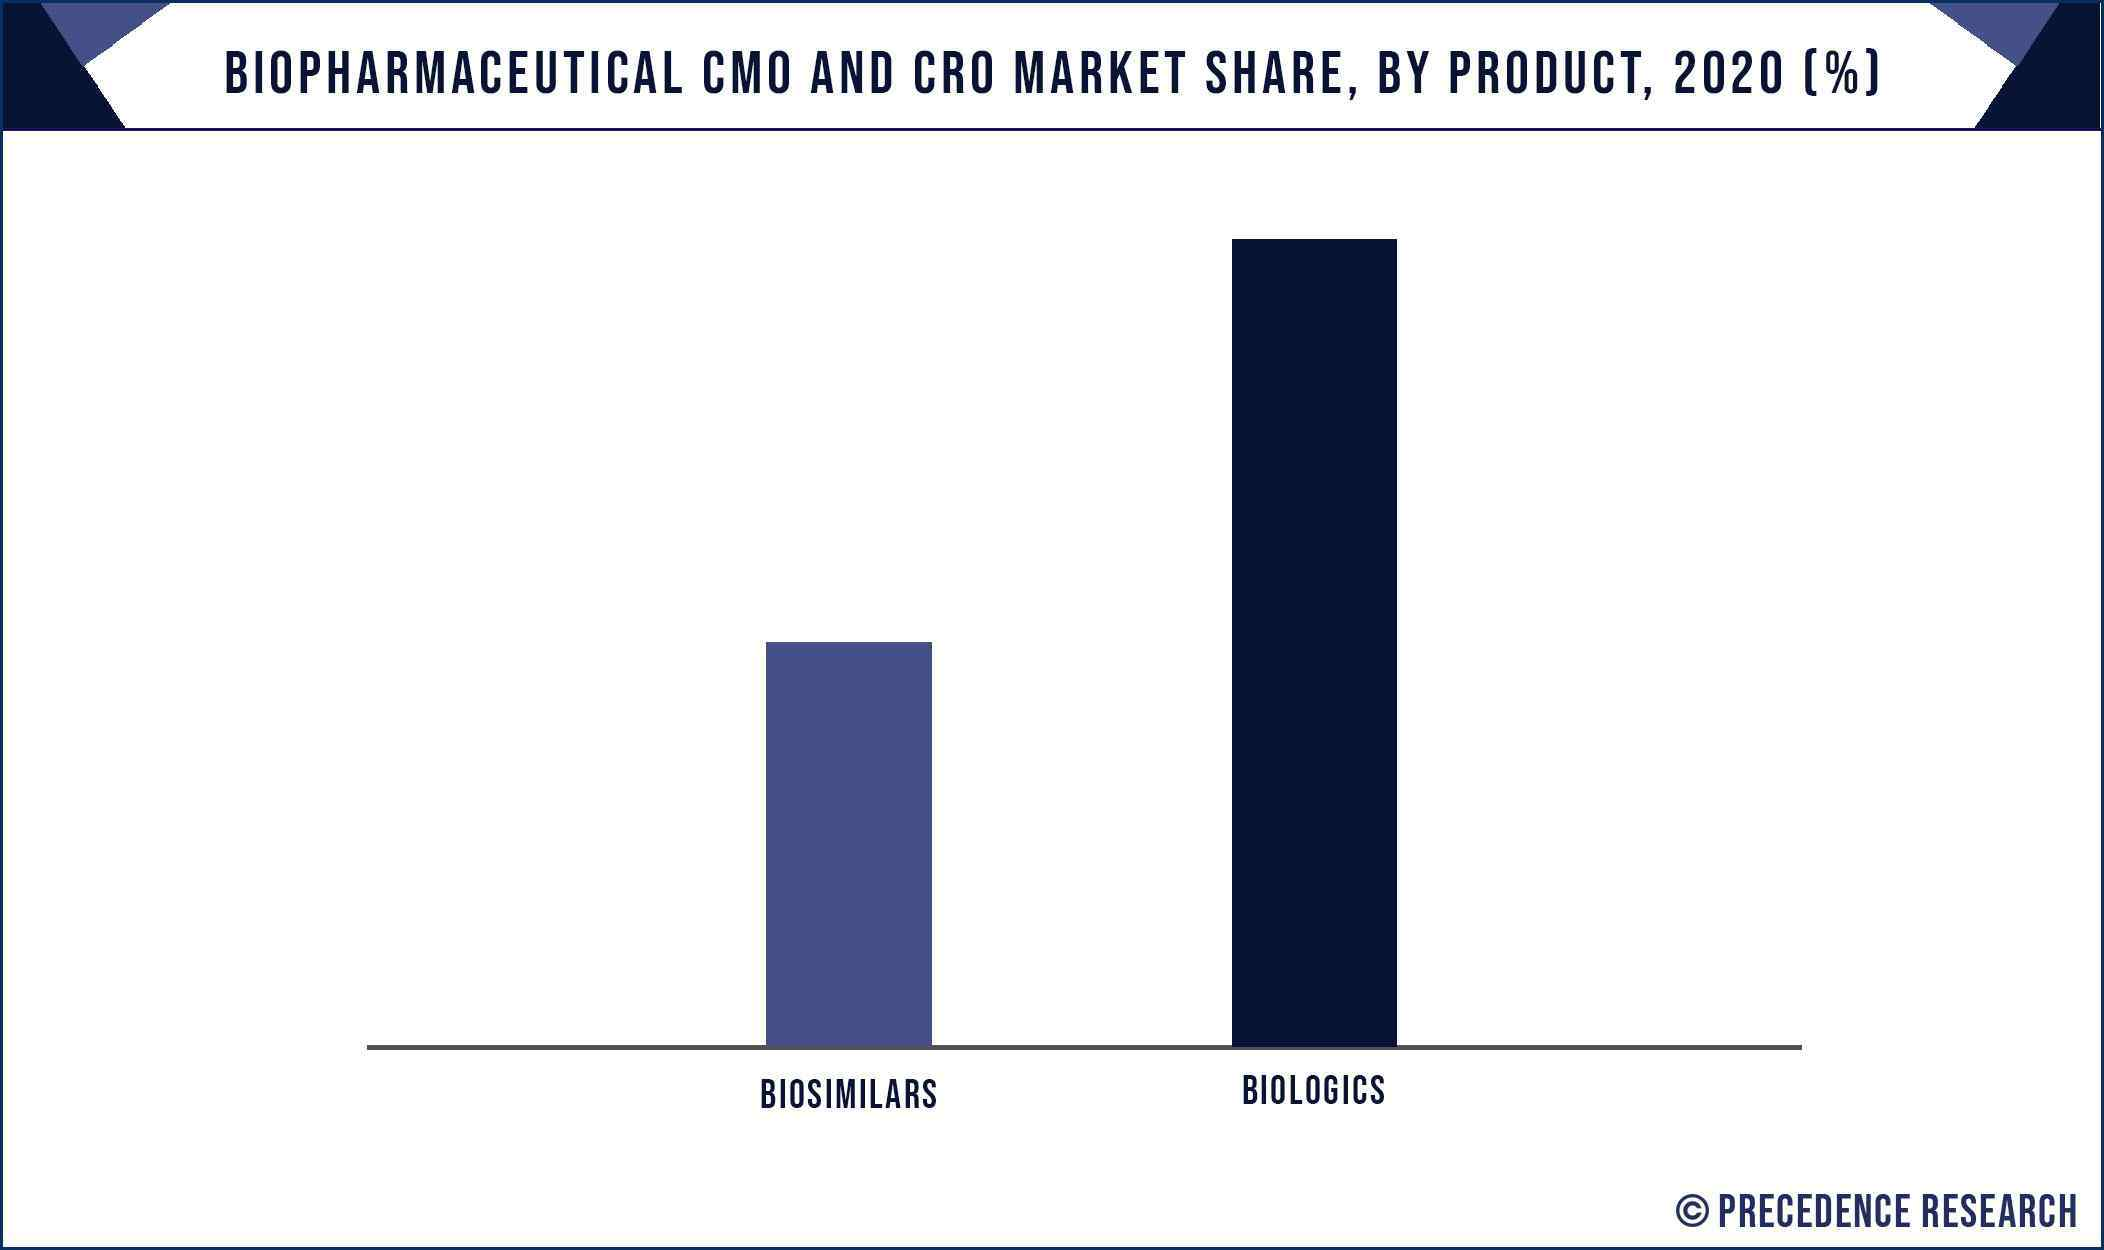 Biopharmaceutical CMO and CRO Market Share, By Product, 2020 (%)